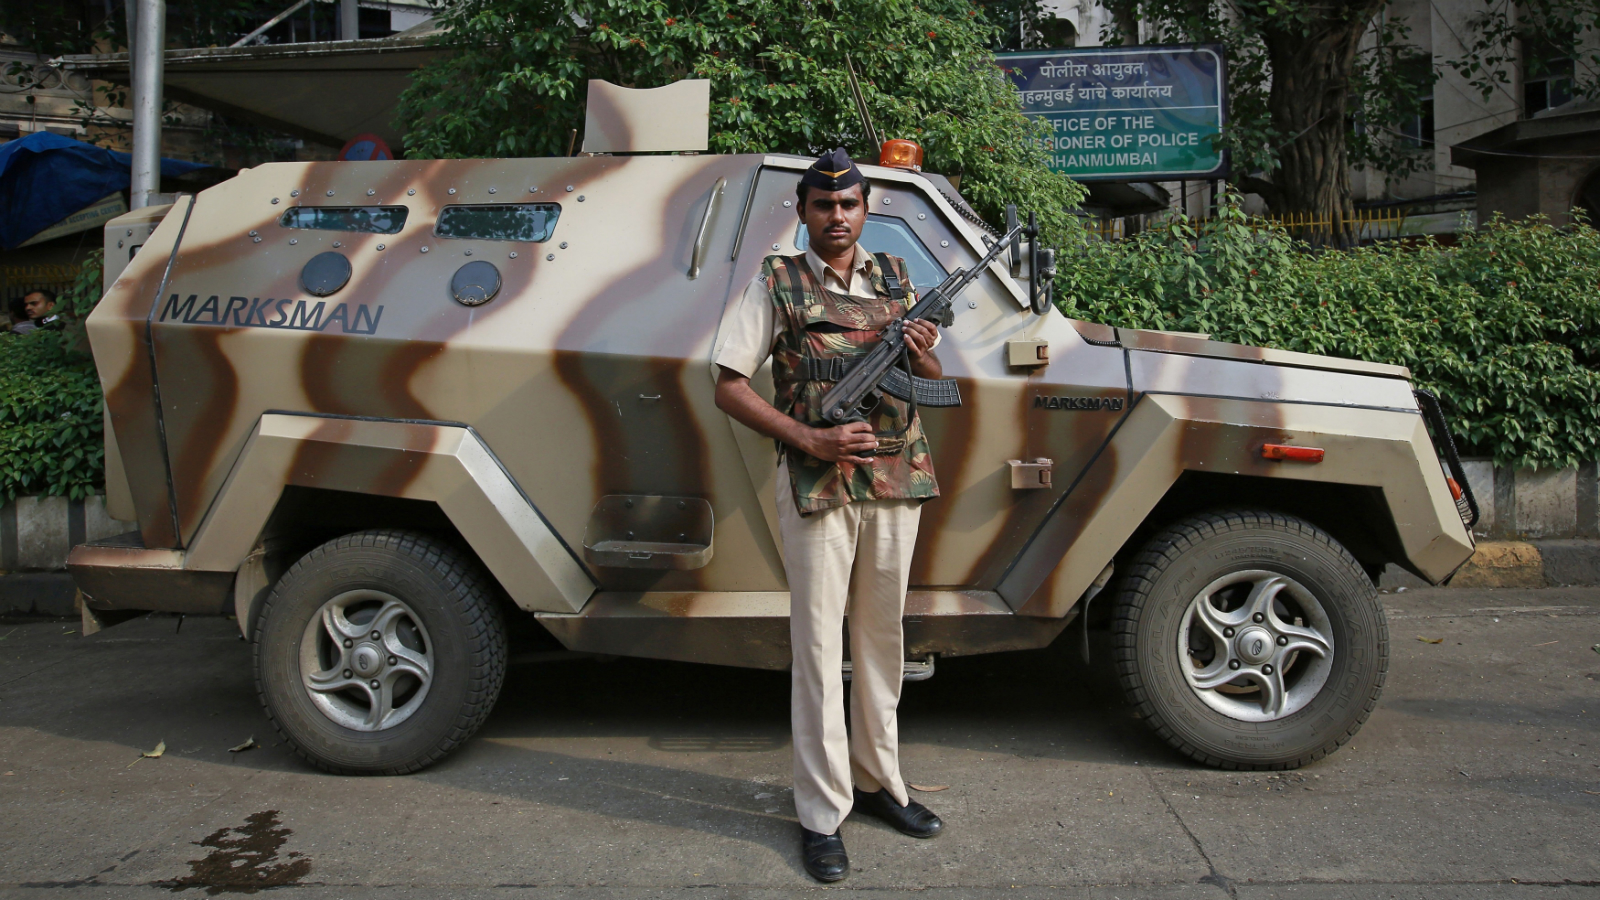 A Mumbai police constable poses as he stands guard next to an armoured vehicle outside the police commissioner's office in Mumbai October 1, 2014. When the killing of an unarmed black teenager by a white policeman in Ferguson, Missouri, in August sparked sometimes violent protests, the response of police in camouflage gear and armoured vehicles wielding stun grenades and assault rifles seemed more like a combat operation than a public order measure. Some U.S. police departments have recently acquired U.S. military-surplus hardware from wars abroad, but there are many law enforcers around the world whose rules of engagement also allow the use of lethal force with relatively few restrictions. But for every regulation that gives police wide scope to use firearms, there is another code that sharply limits their use. In India, the Rapid Action Force (RAF) are called on for violent disorder that the police are unable to contain. They require an on-the-spot magistrate's consent and must issue a warning before each escalation of the use of force, from verbal warning to water cannon and tear gas, then to rubber bullets or baton rounds, and then to firearms. Picture taken October 1.